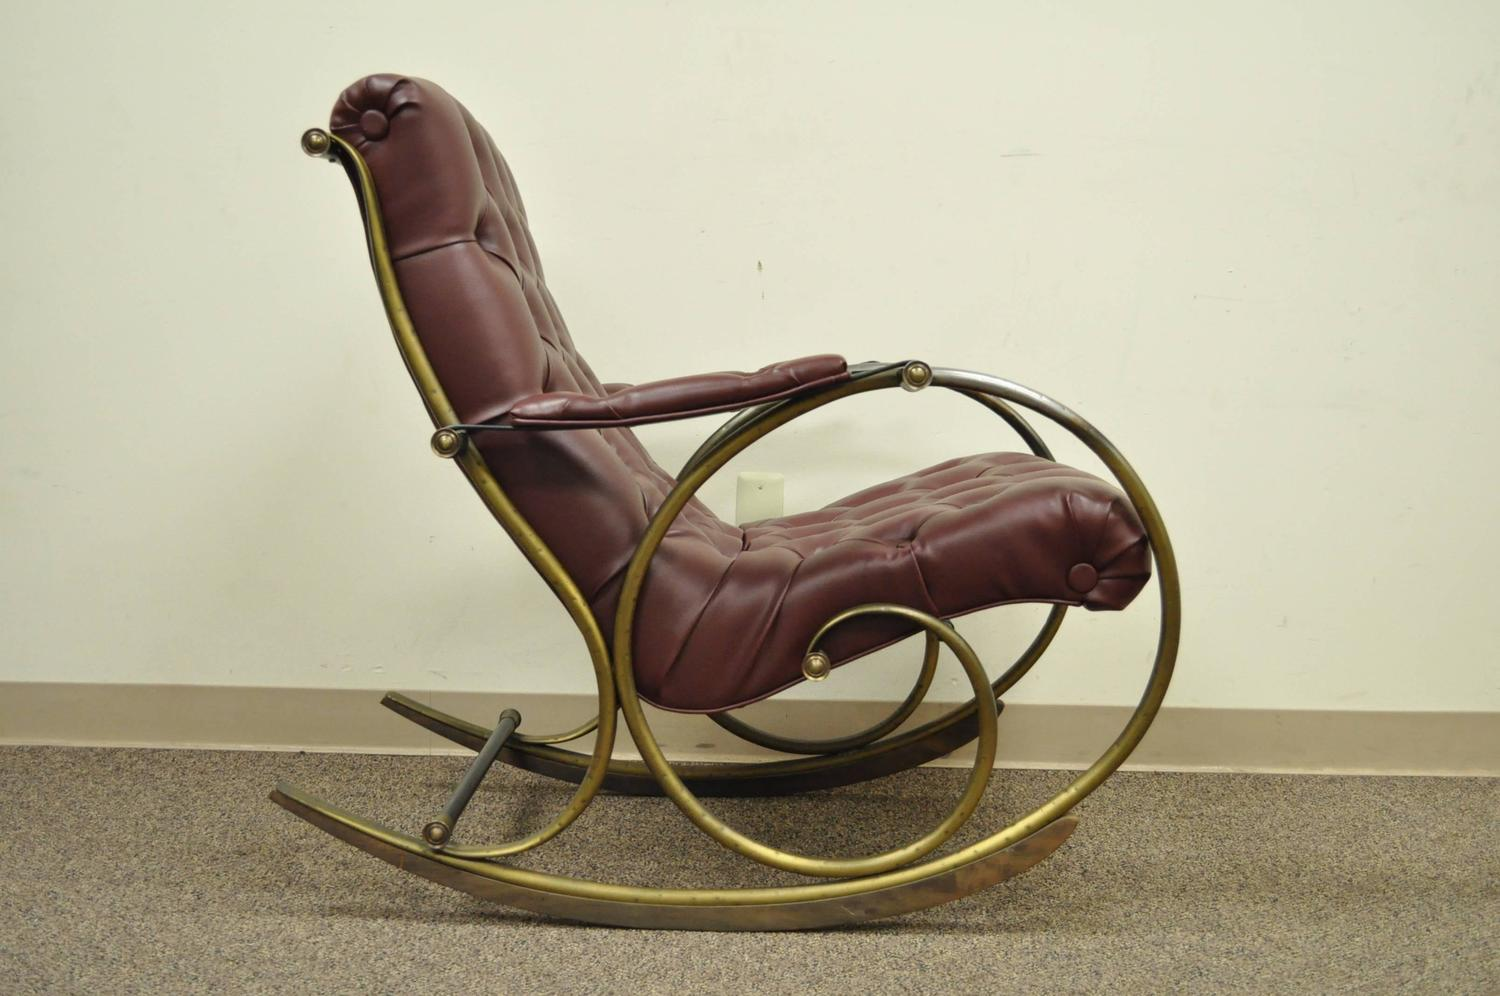 And wood rocking chair by woodard leather brass and wood rocker by - Mid Century Lee Woodard Tubular Brass Rocking Chair Or